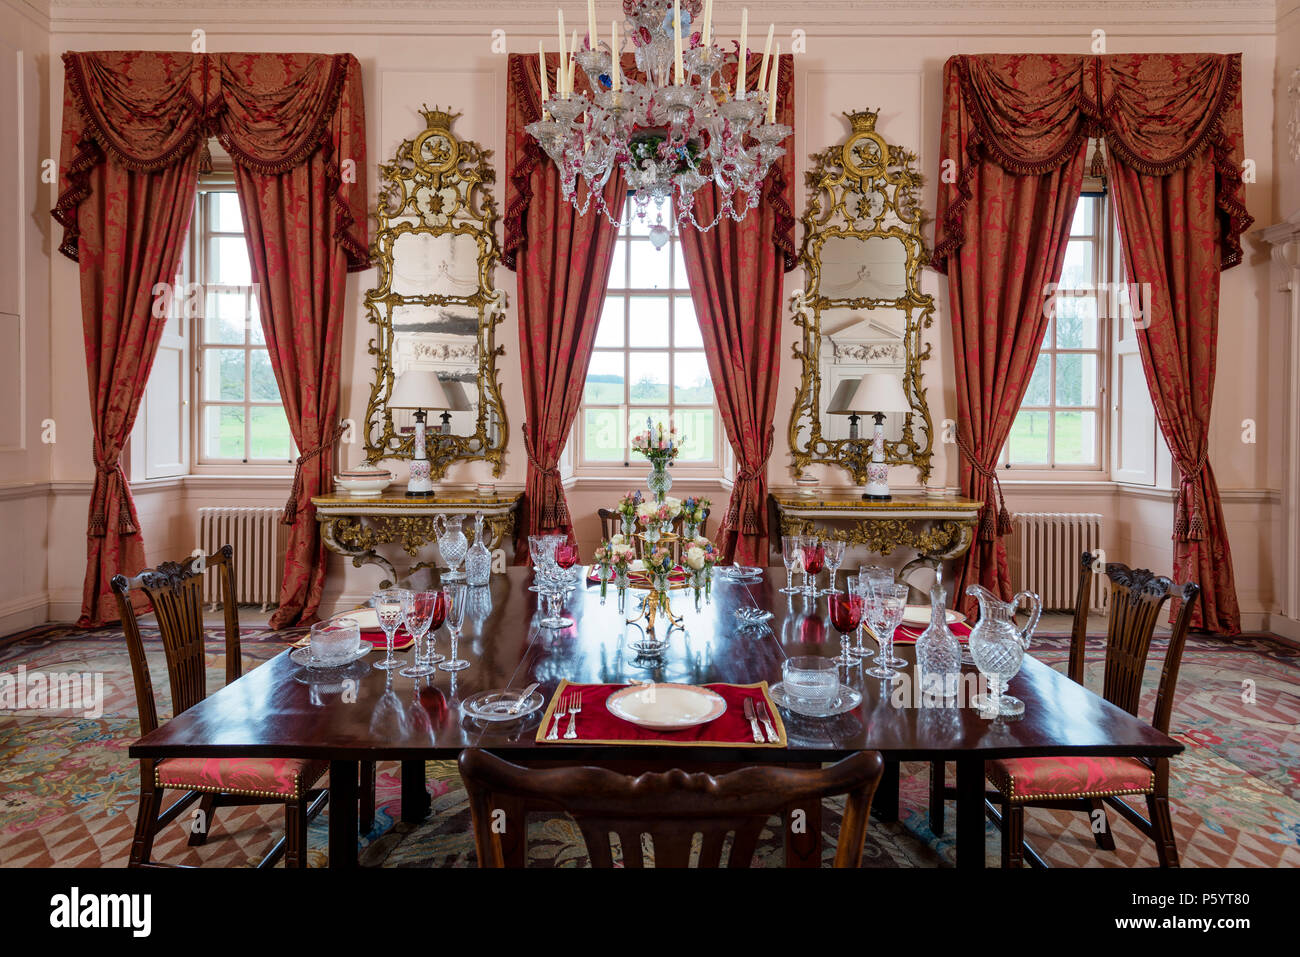 Luxurious baroque dining room - Stock Image